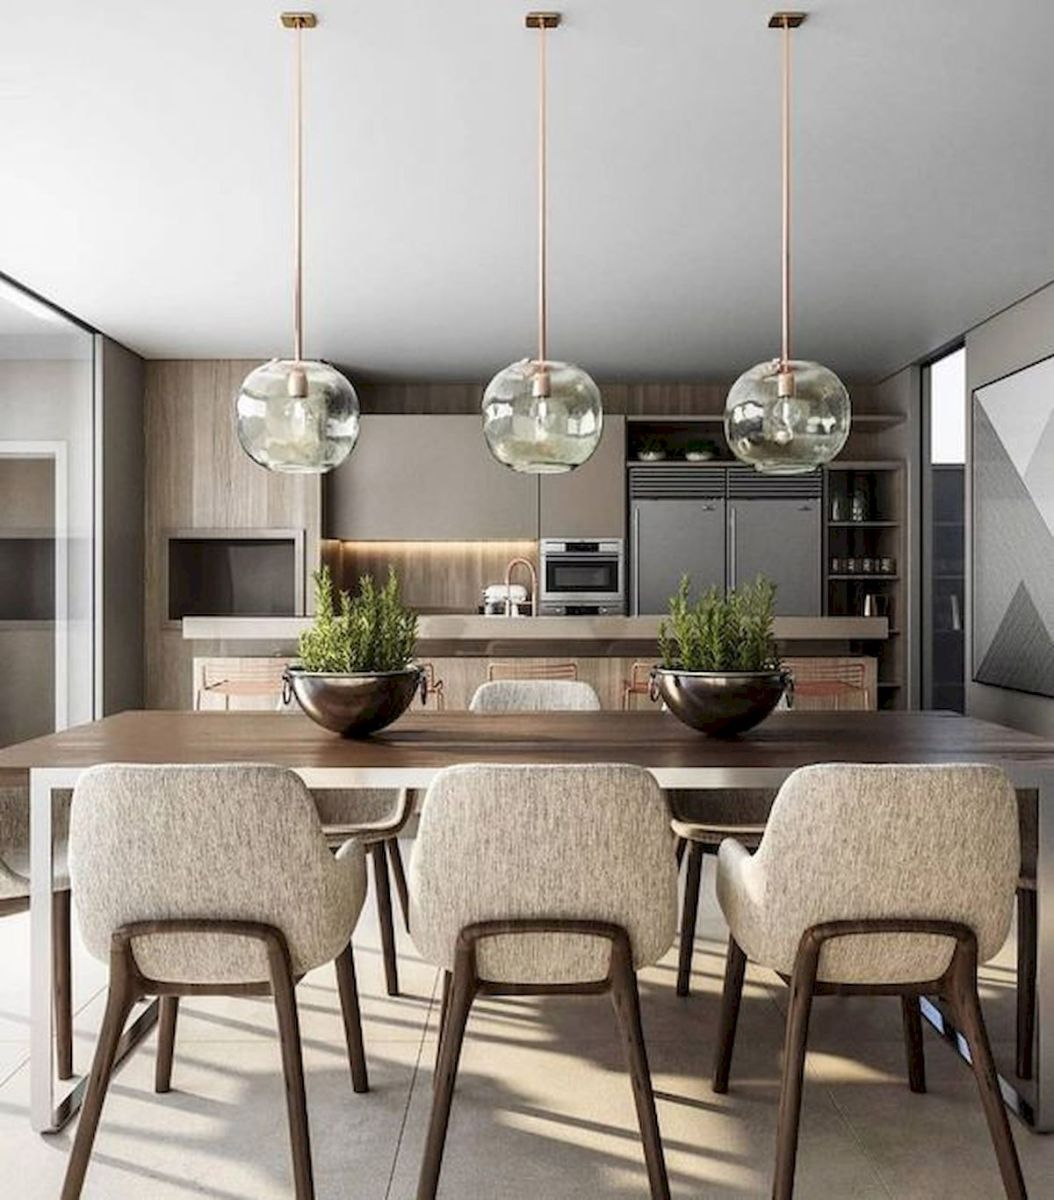 80 Elegant Modern Dining Room Design and Decor Ideas (56)